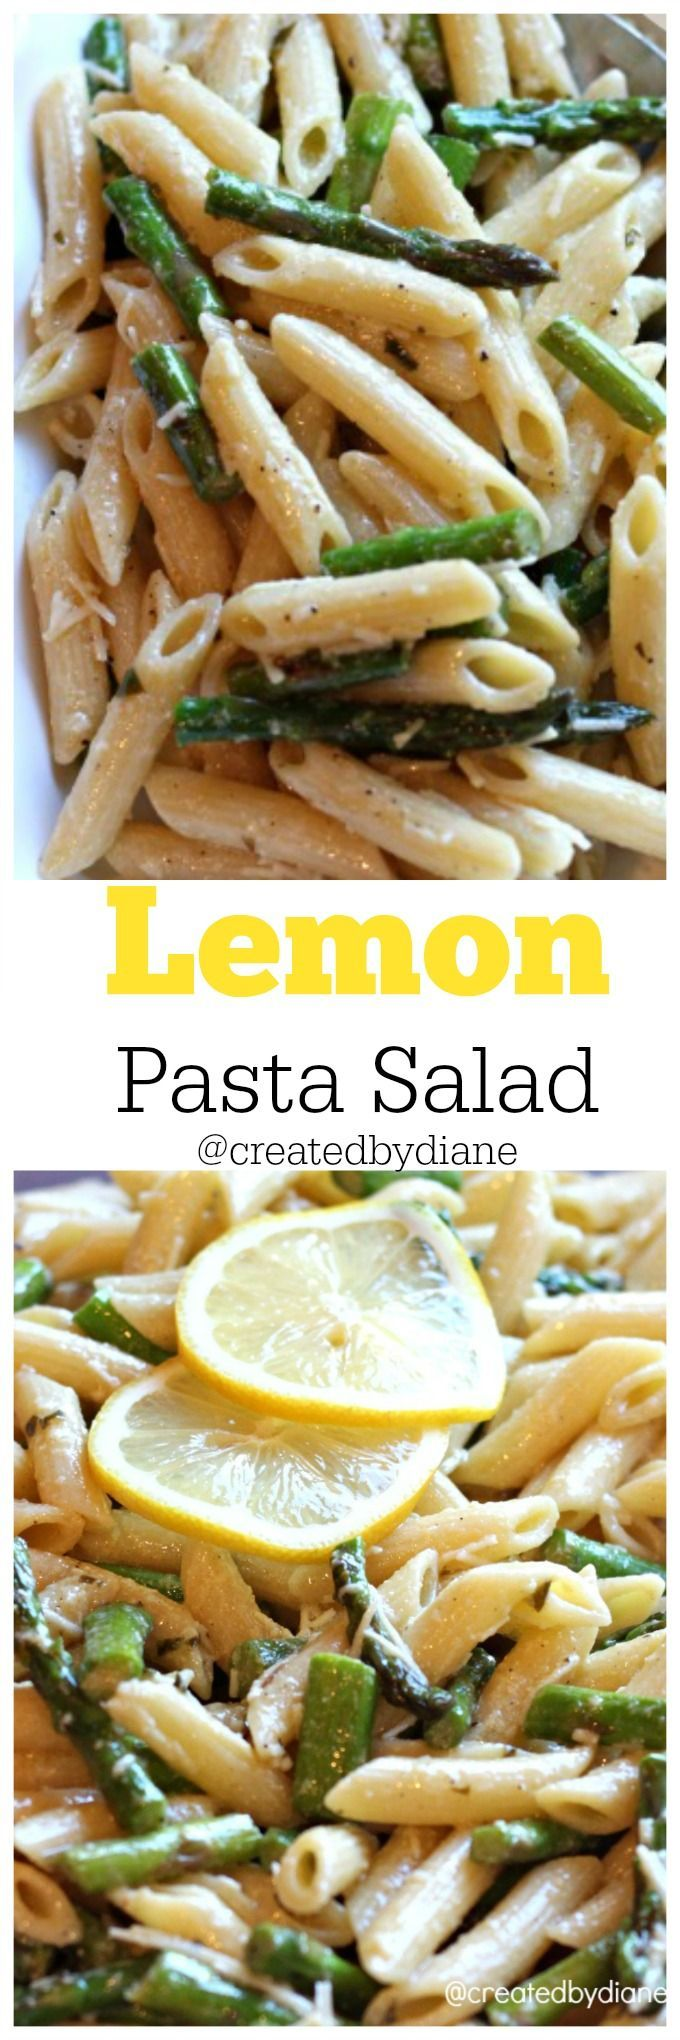 Lemon Pasta Salad recipe from @createdbydiane